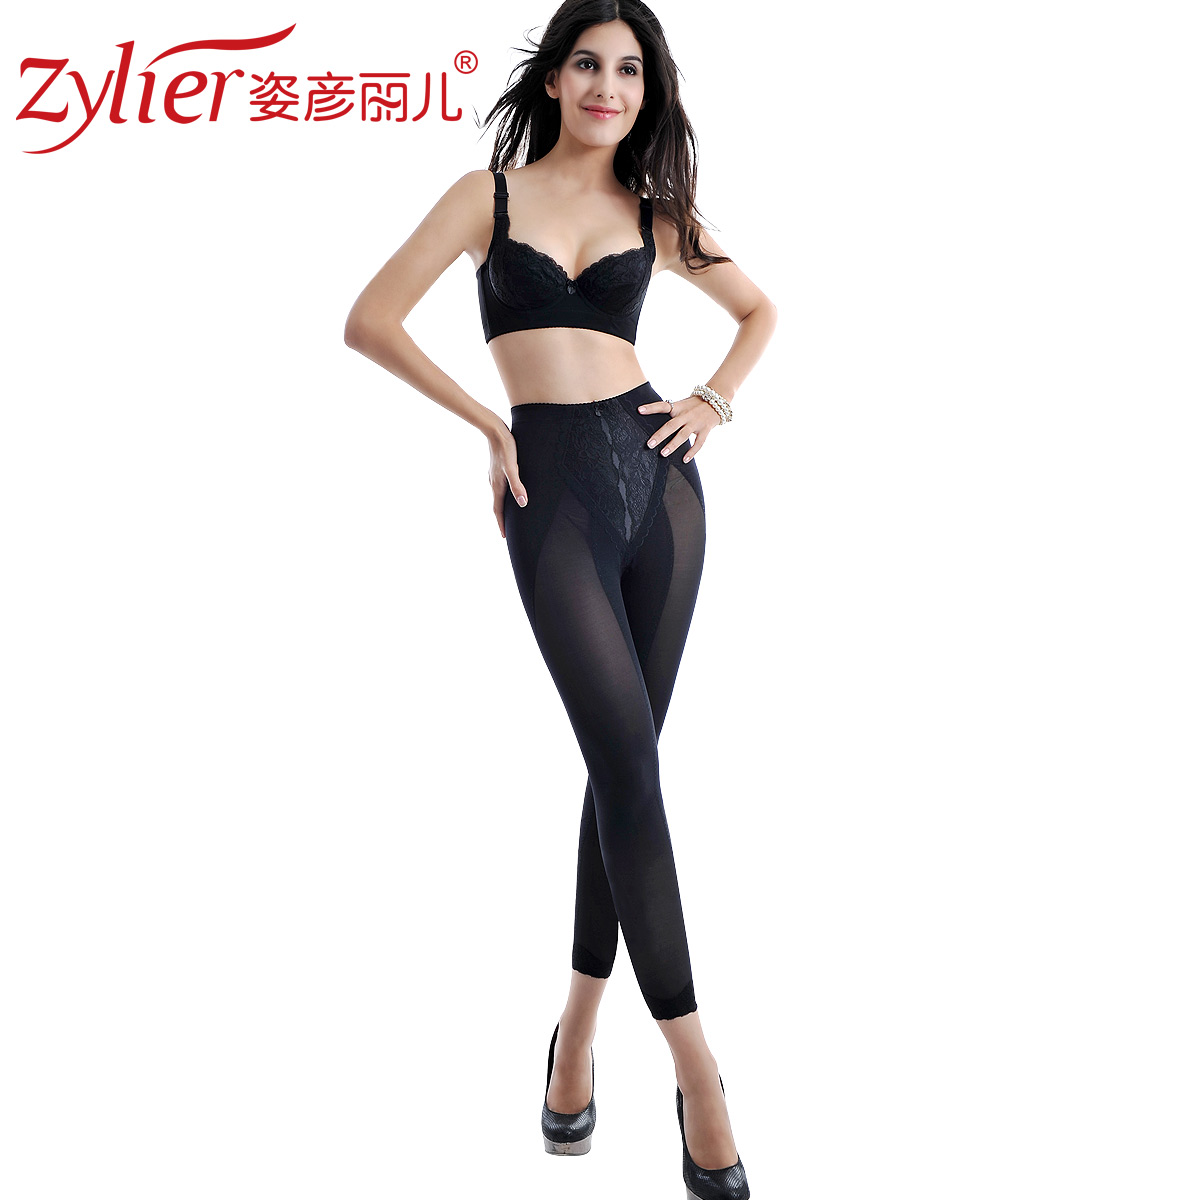 2012 winter new arrival thin body shaping beauty care pants abdomen drawing pants legging ankle length trousers sk11